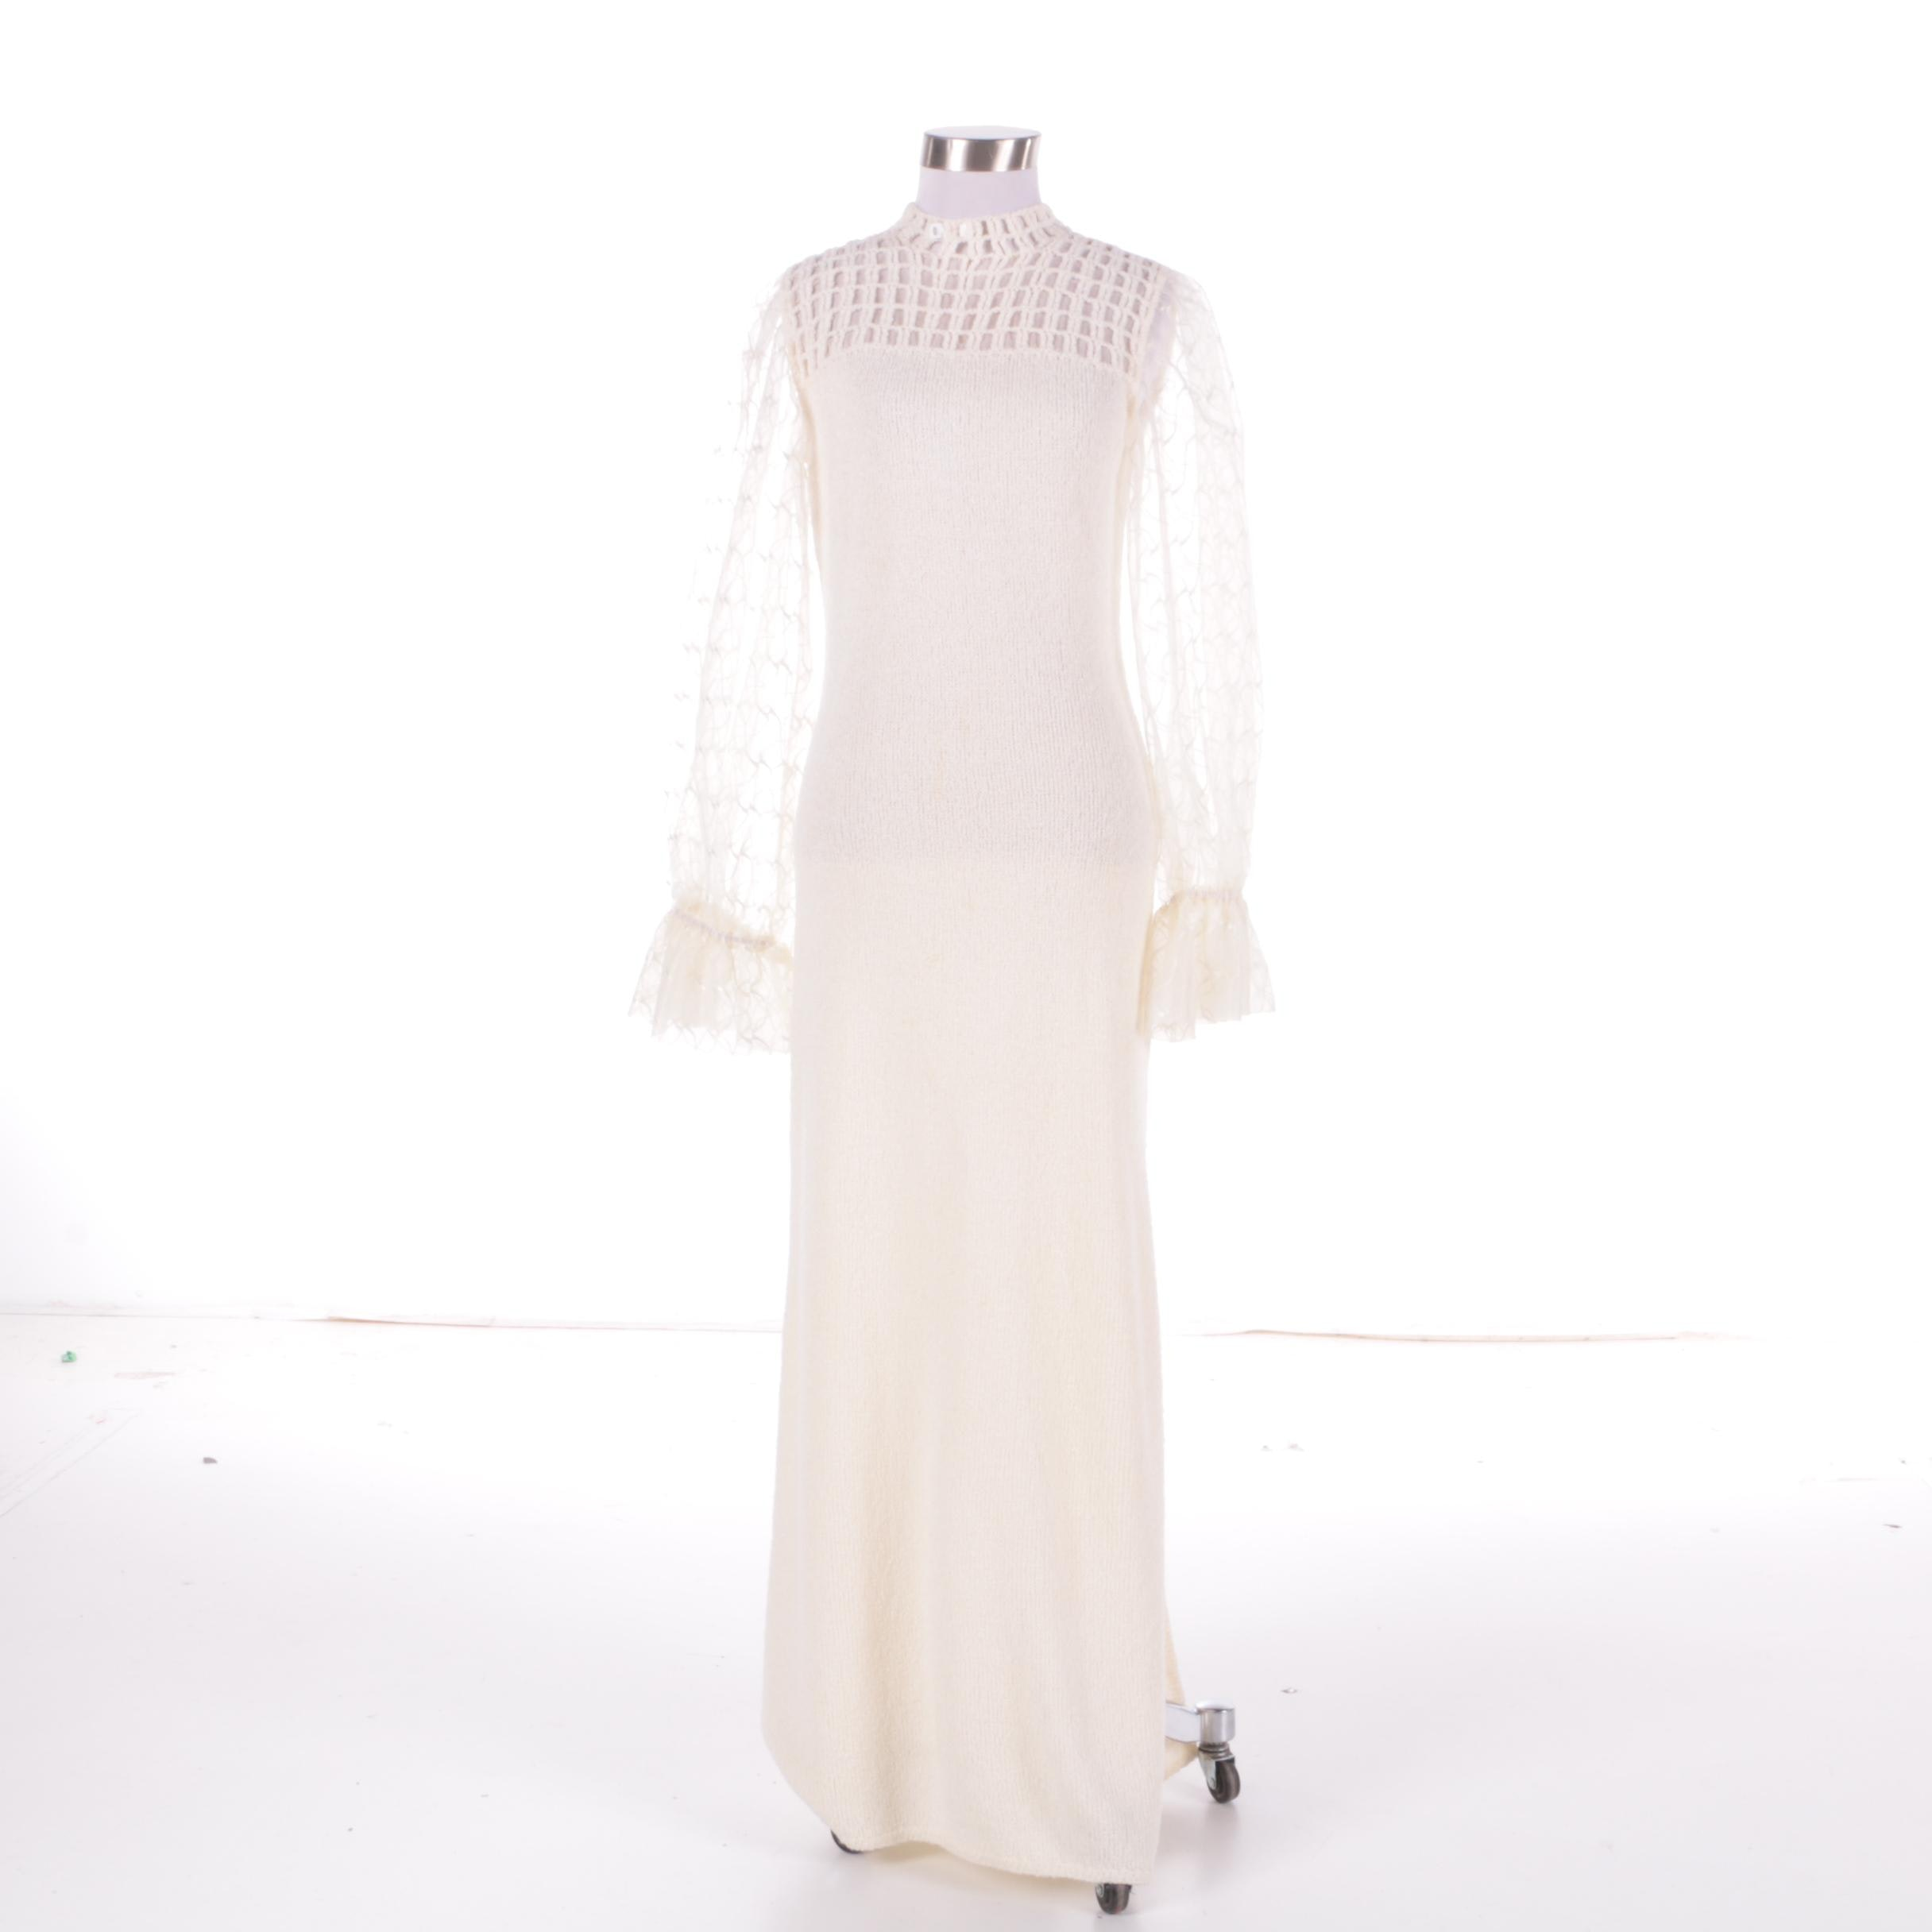 1980s St. John Ivory Knit Maxi Dress with Sheer Sleeves and Crochet Collar